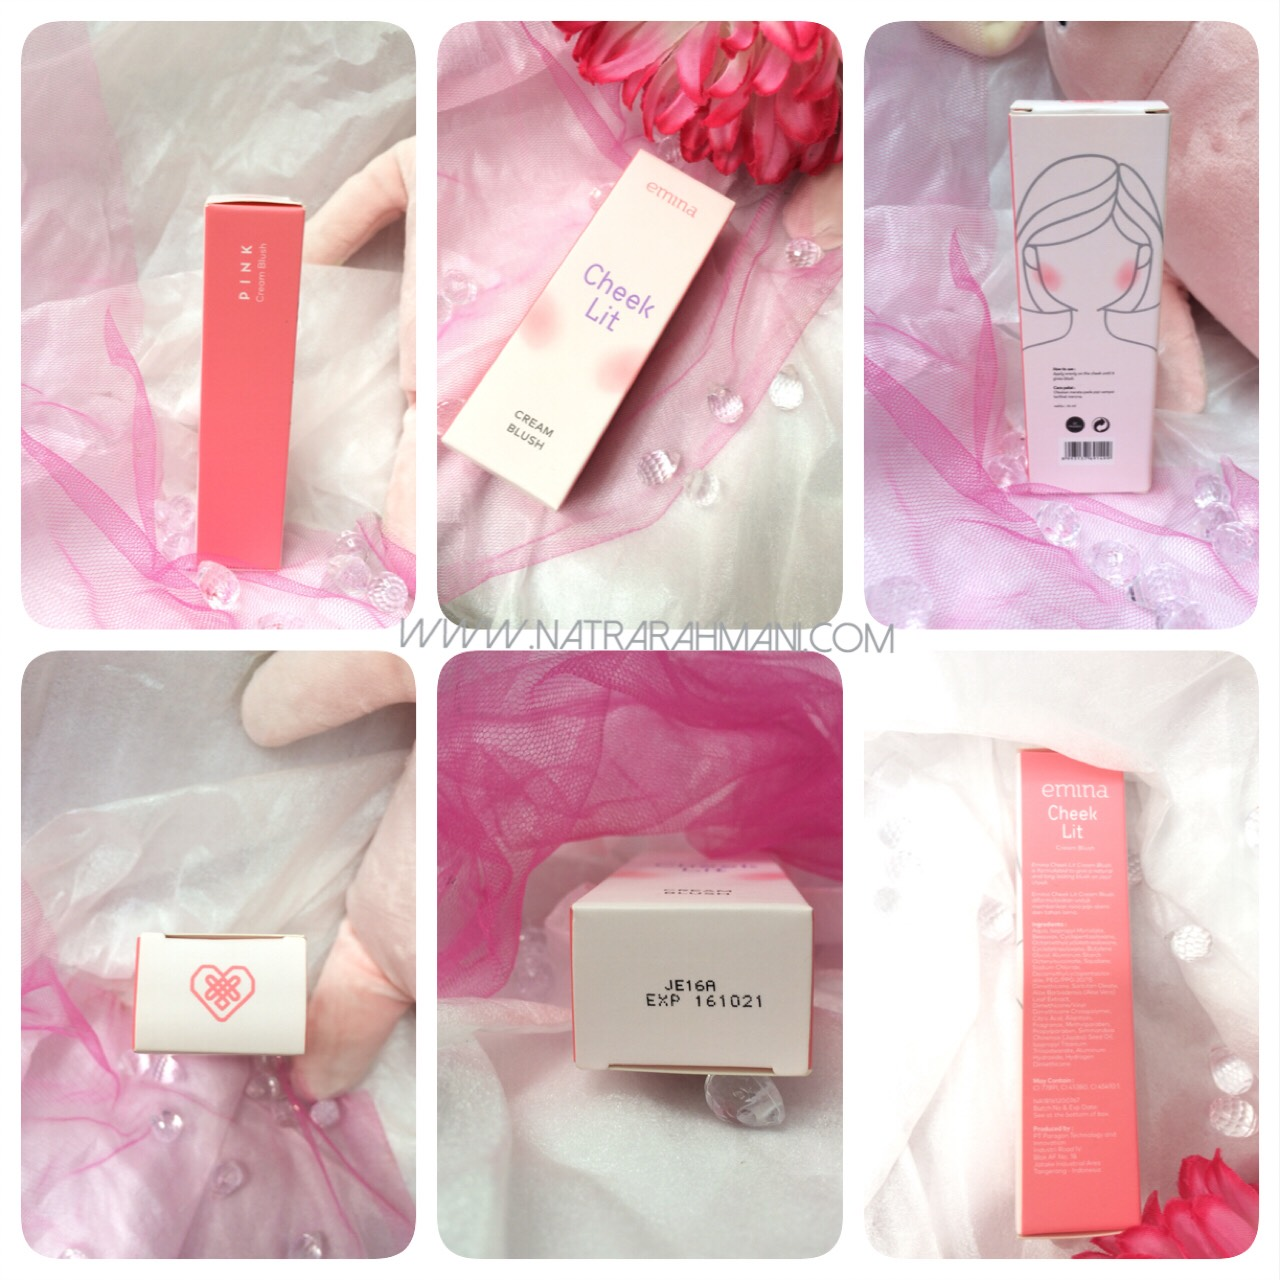 emina-cheek-lit-cream-blush-pink-natrarahmani